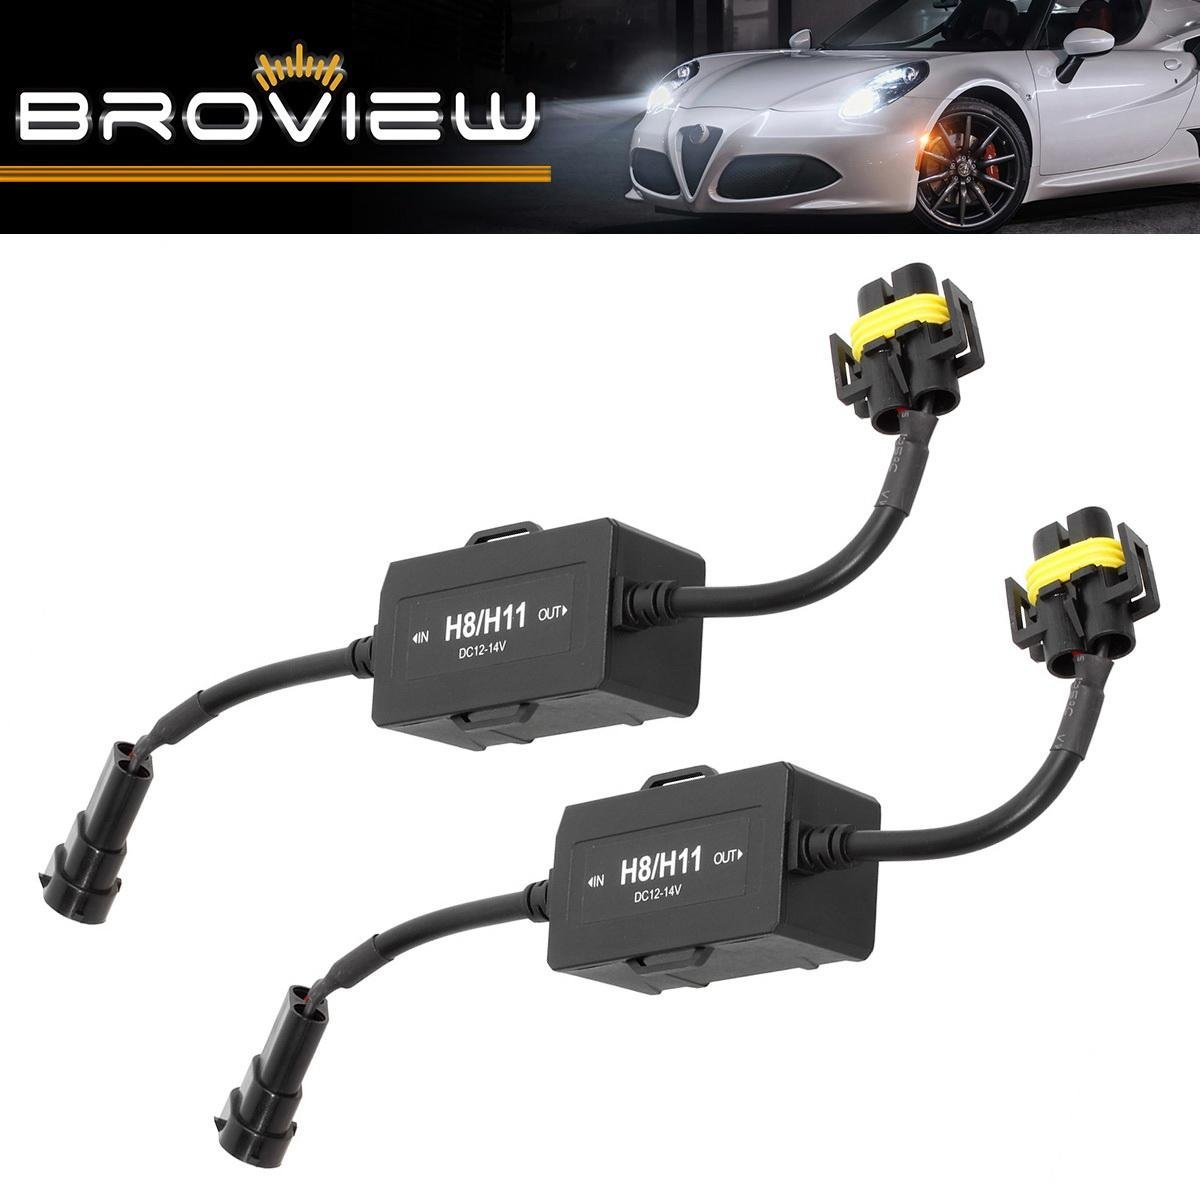 BROVIEW Canbus Series -For H8 H9 H11 LED Headlights Conversion Kit Anti Flickering -Wire Haress Load Resistor Decorder Canbus Error Free Computer Warning Canceller -(2pcs/1 Pair)